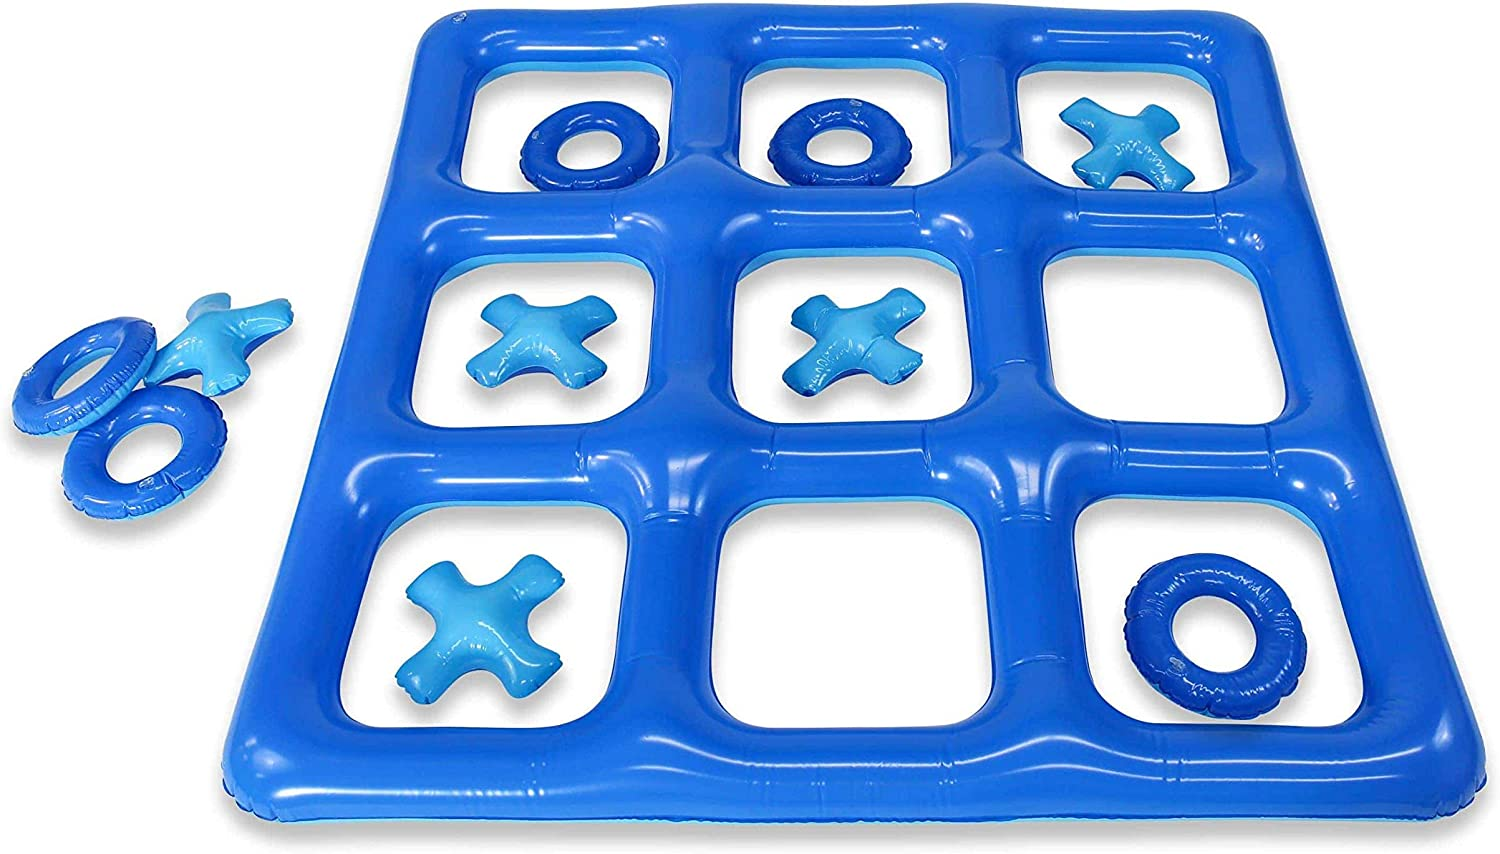 Poolcandy Inflatable Waterproof Jumbo Tic Tac Toe Game